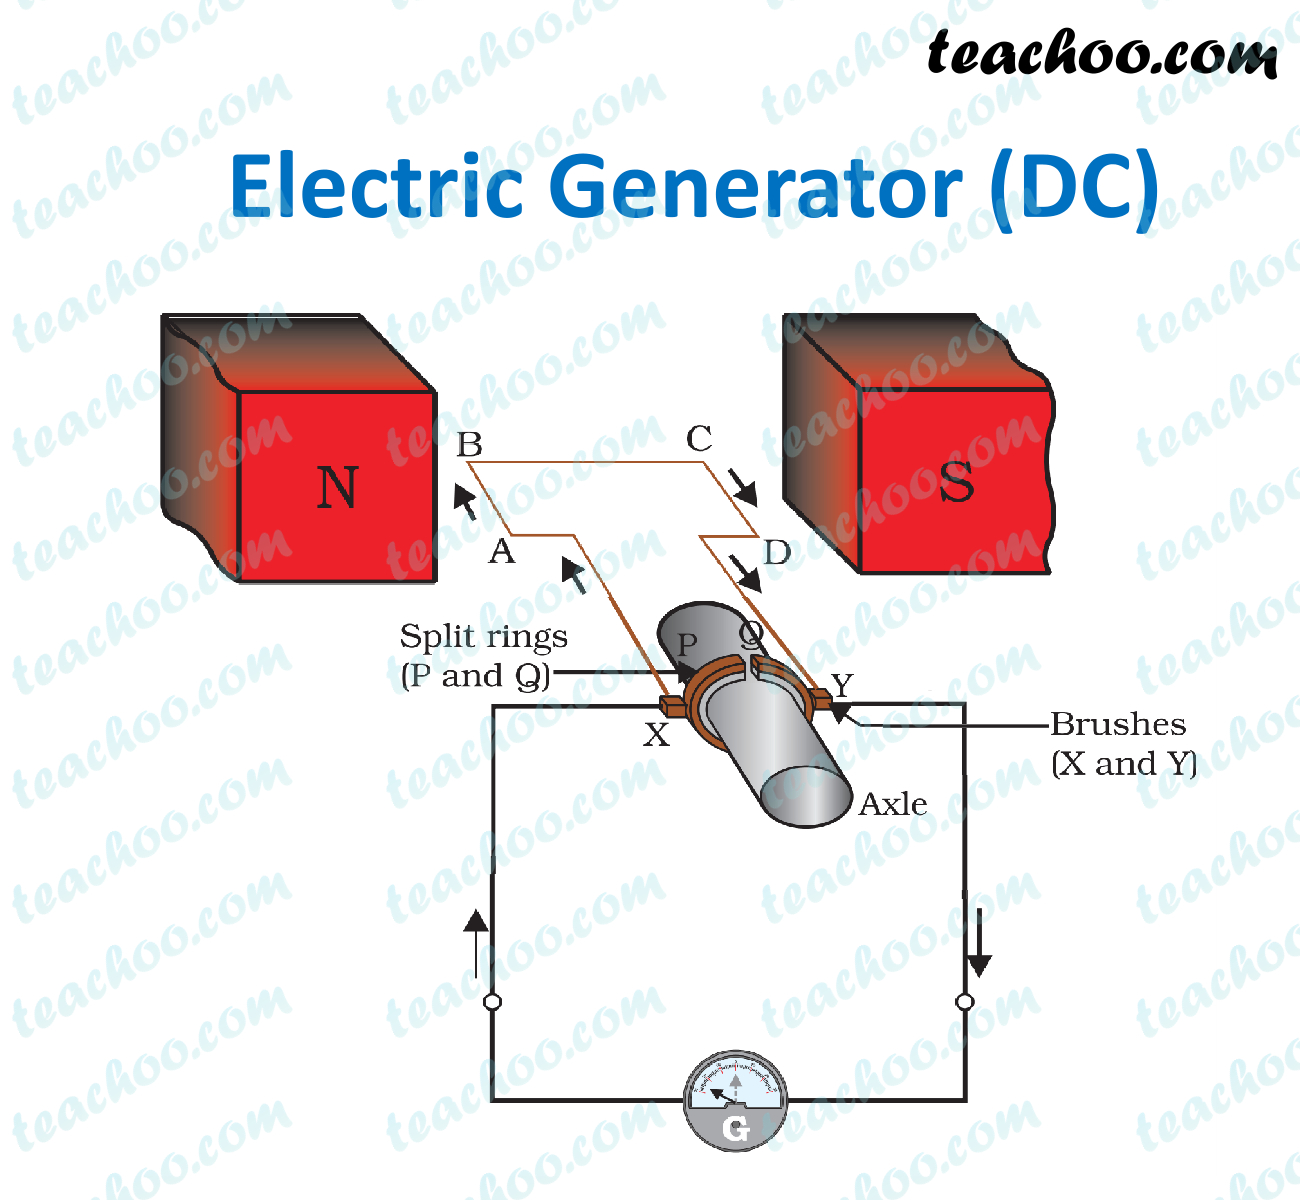 dc-electric-generator---teachoo.jpg